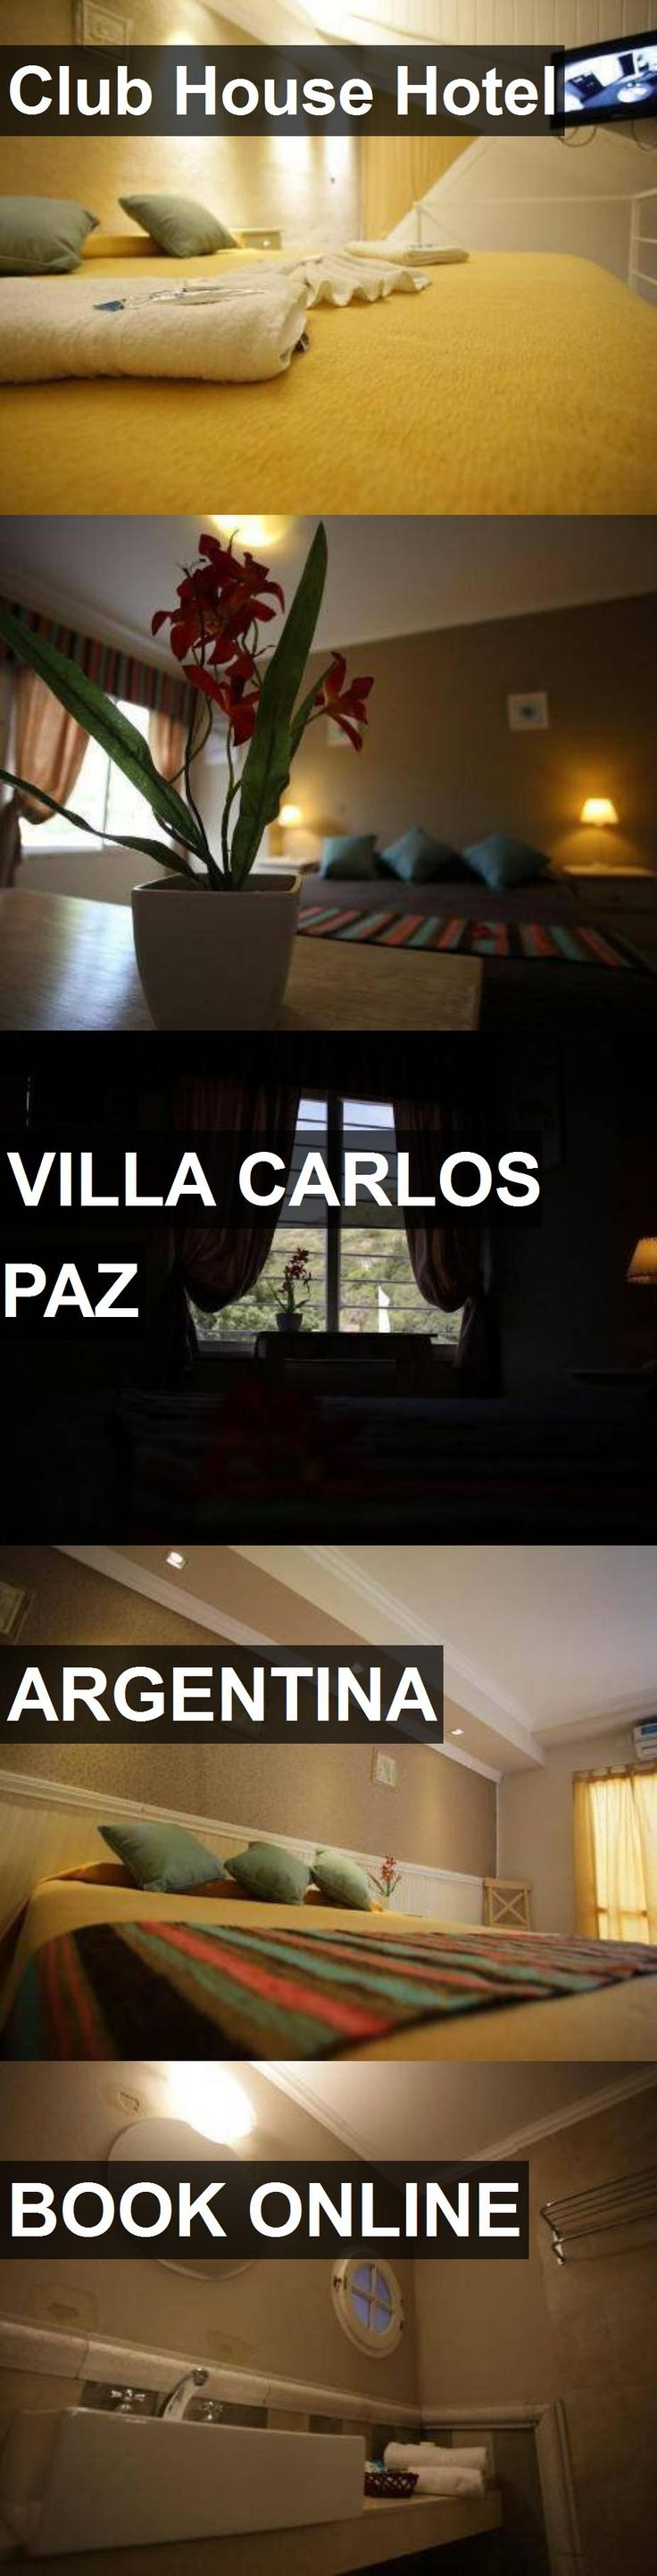 Club House Hotel in Villa Carlos Paz, Argentina. For more information, photos, reviews and best prices please follow the link. #Argentina #VillaCarlosPaz #travel #vacation #hotel